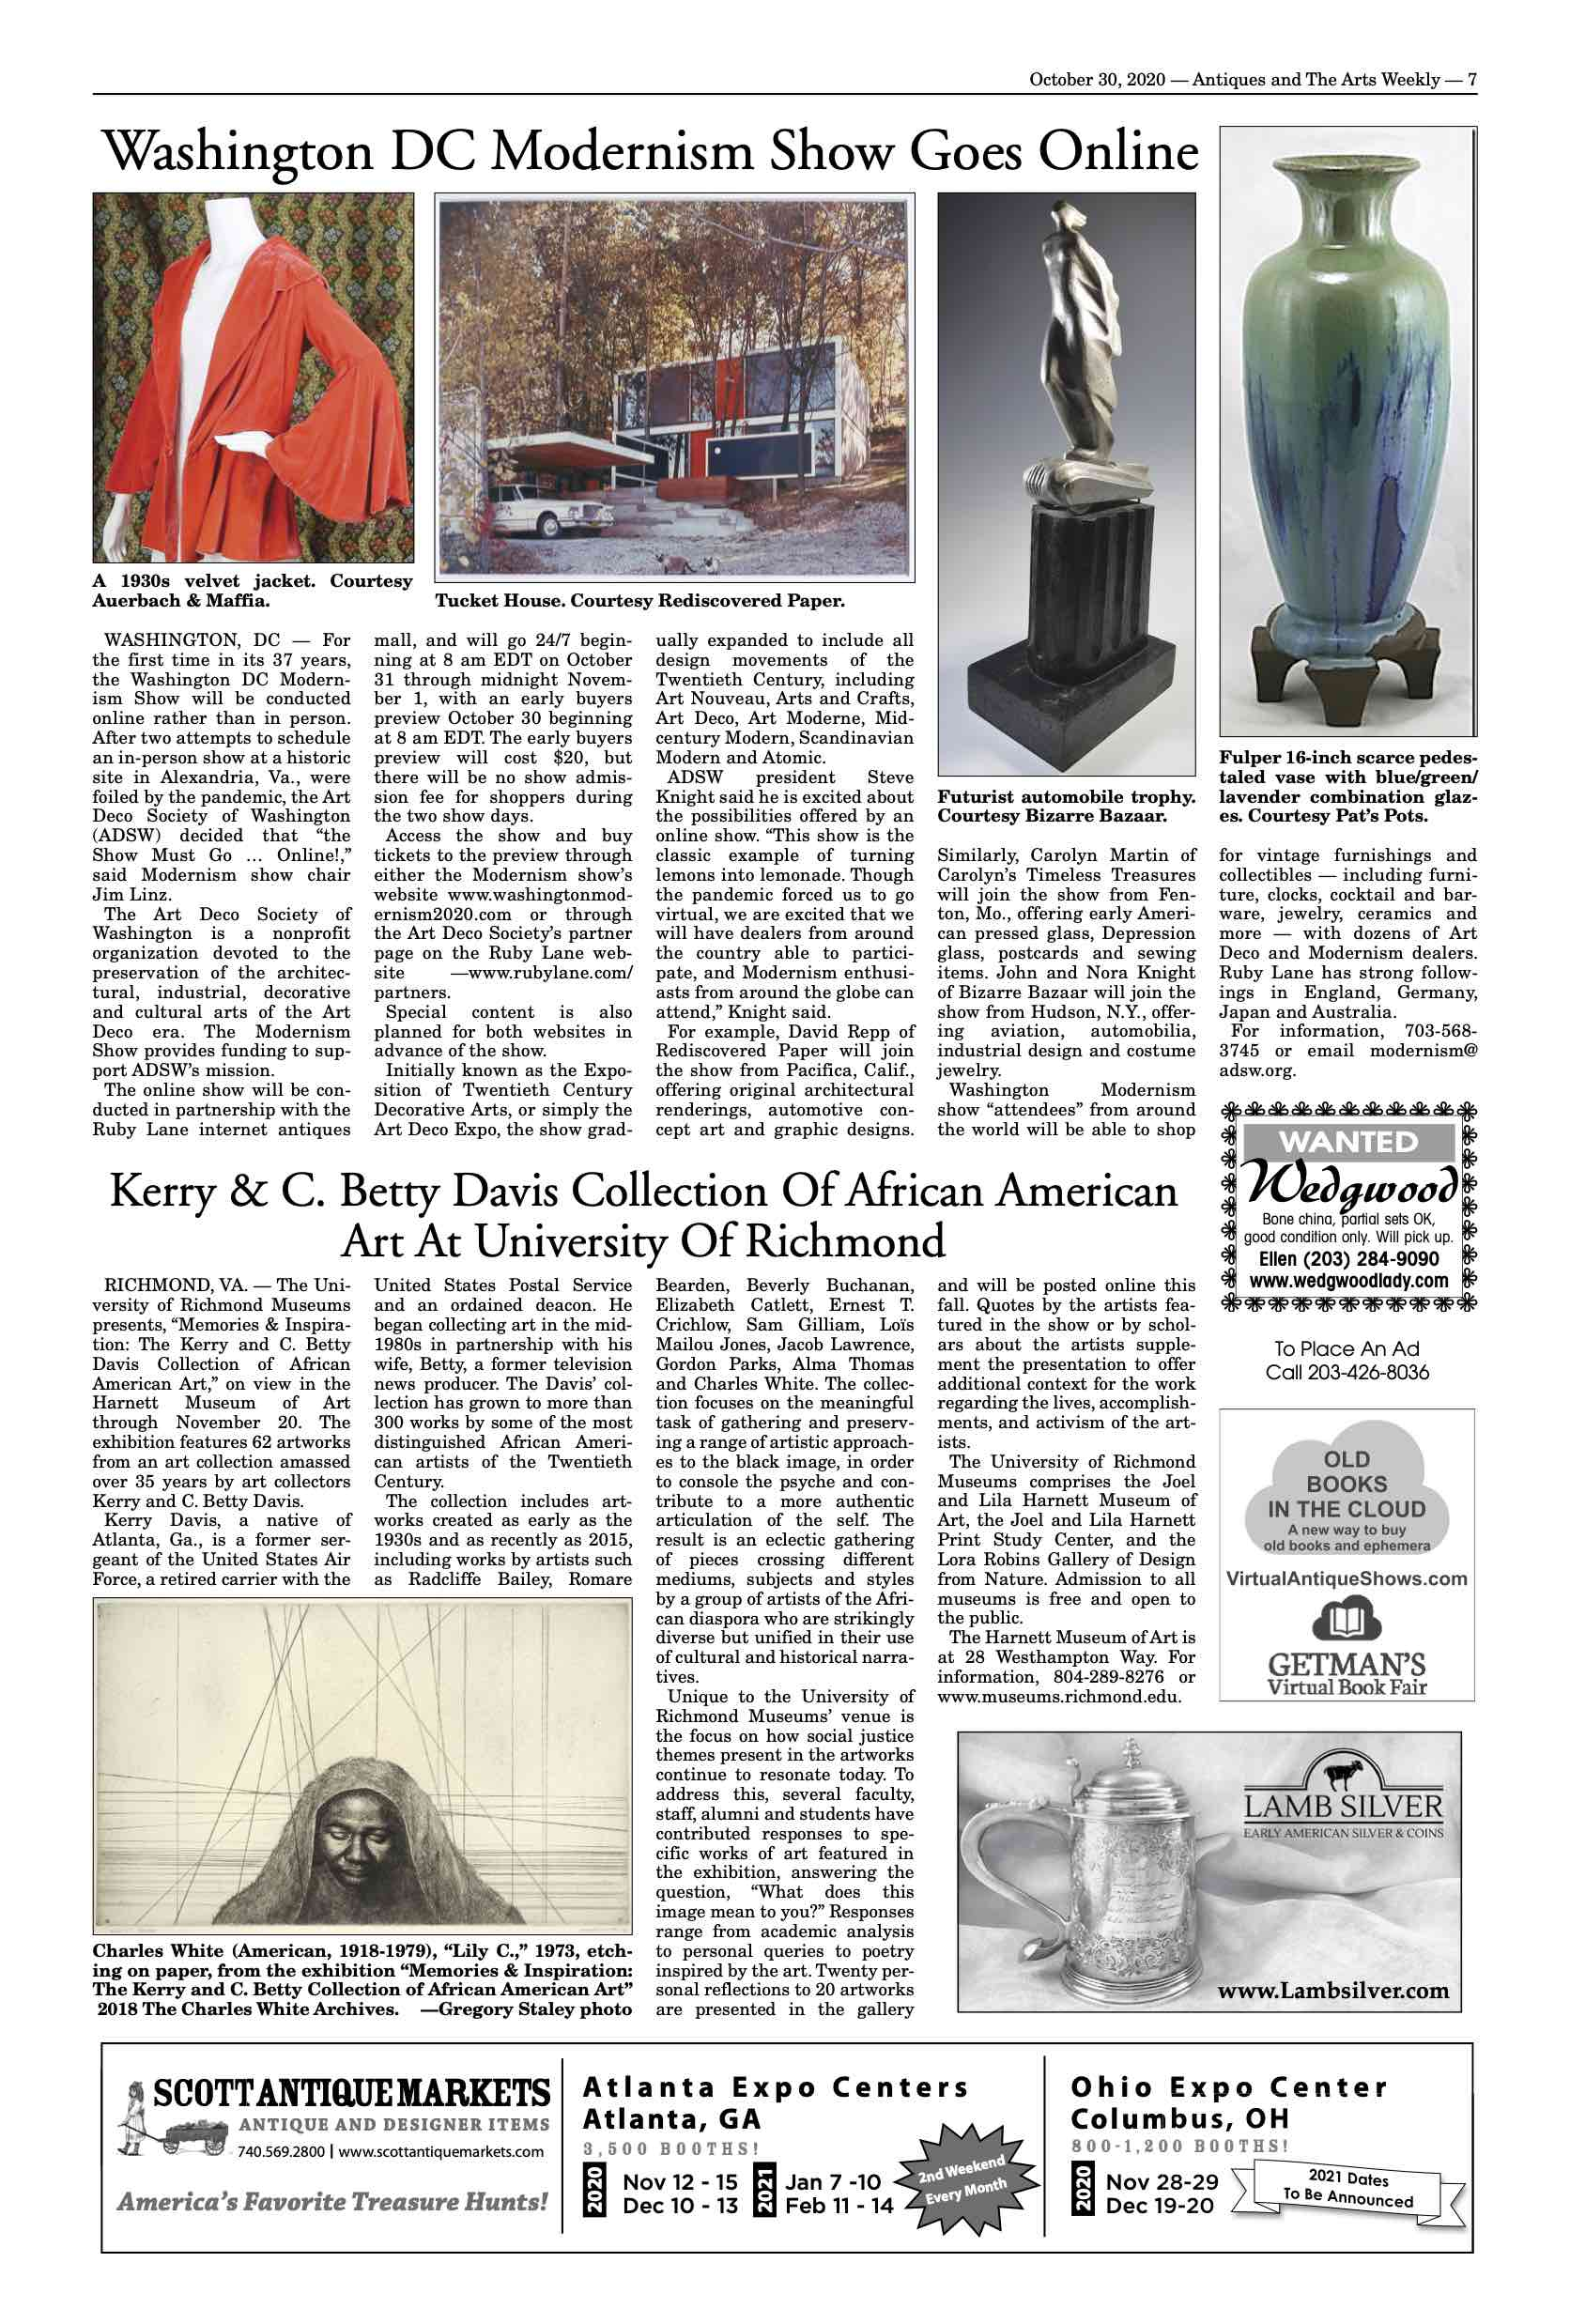 October 30, 2020, Antiques and The Arts Weekly, Washington DC Modernism Show Goes Online image 1